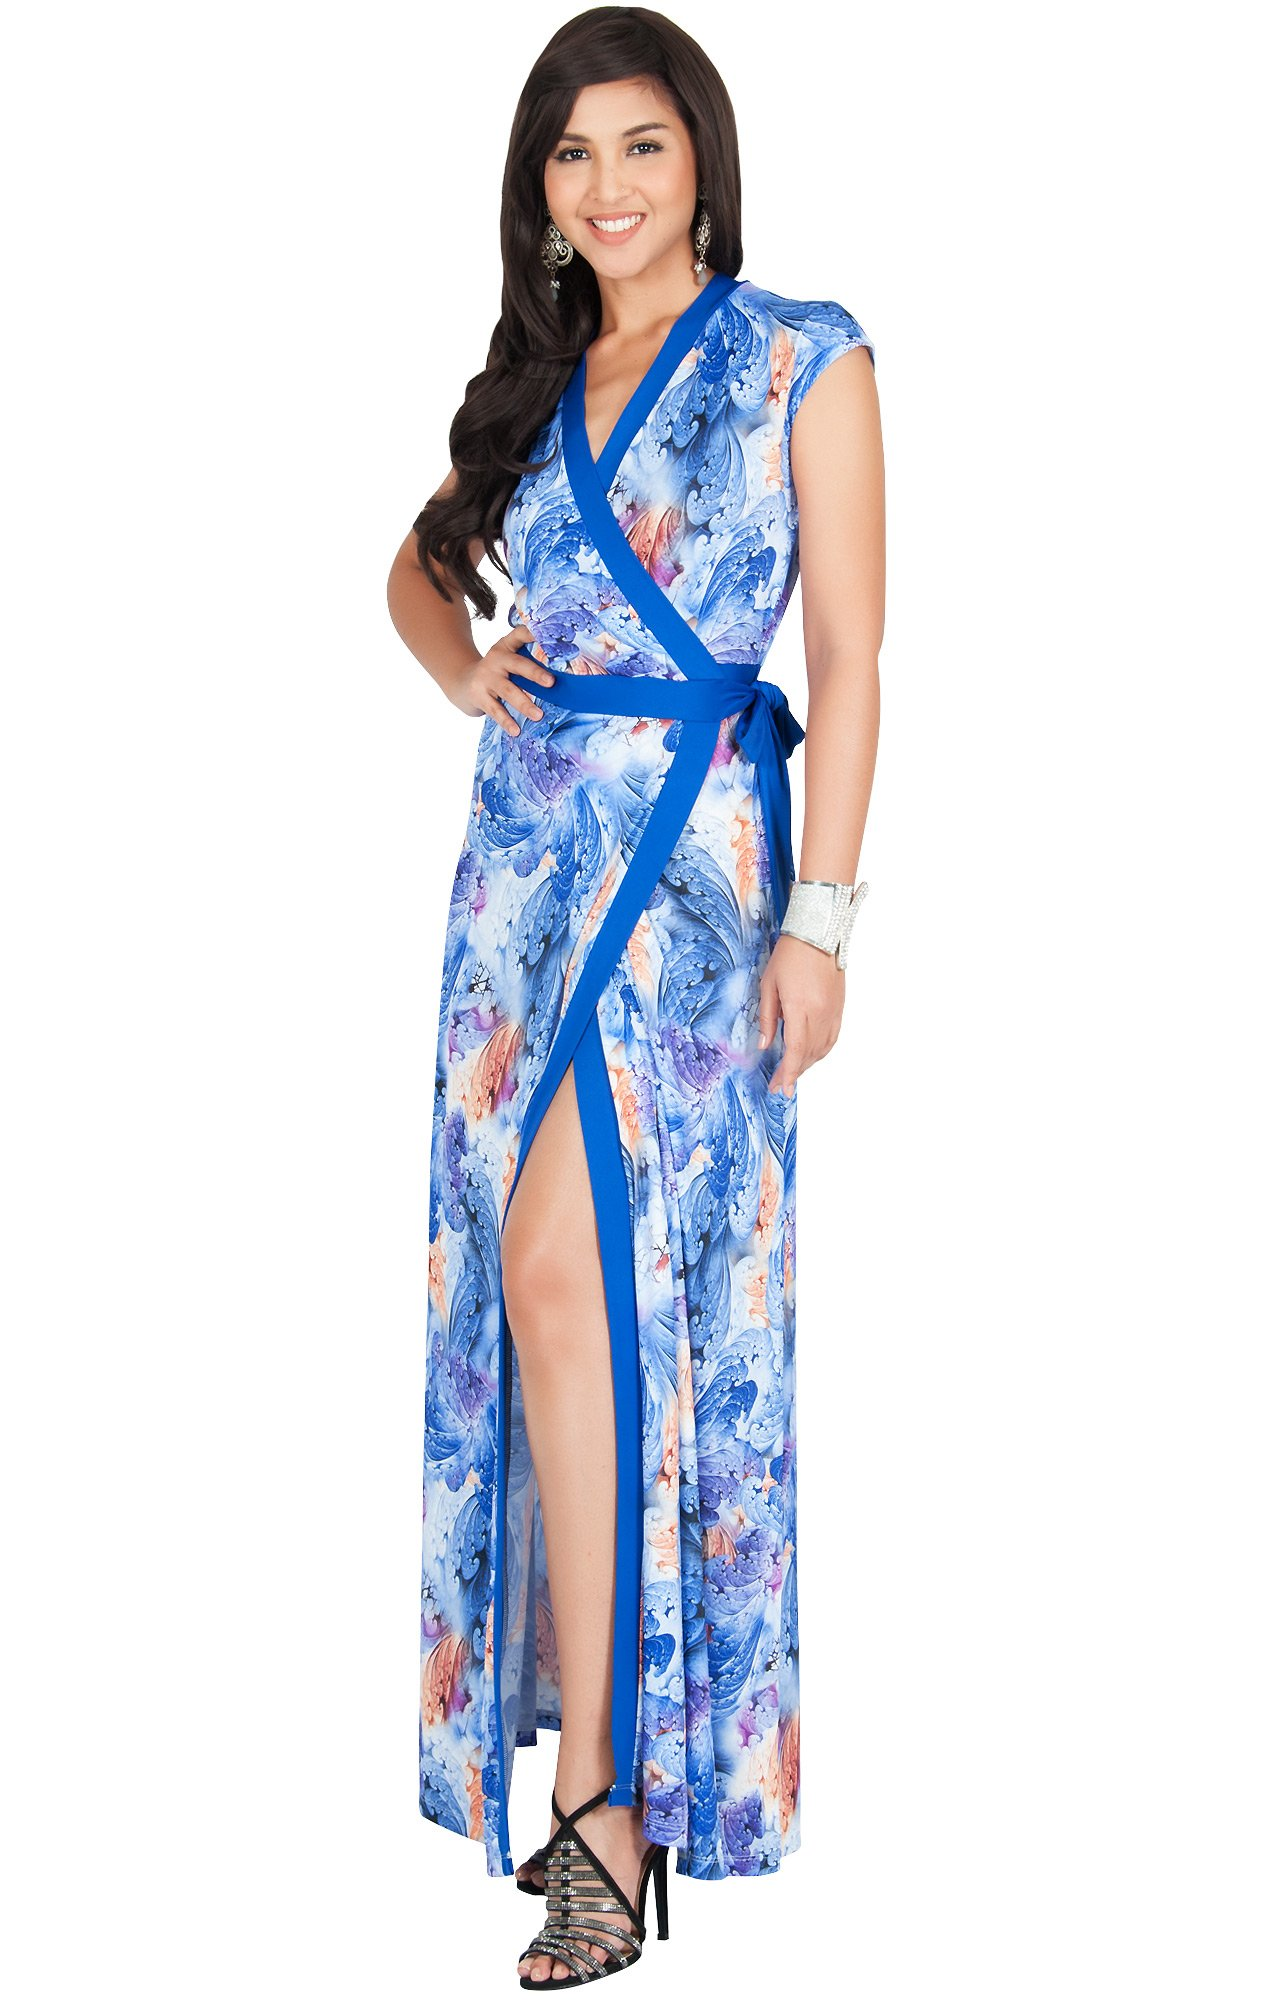 Available at Amazon: KOH KOH Women's Long Cap Sleeve Sexy Wrap Floral Print Summer Sundress Maxi Dress